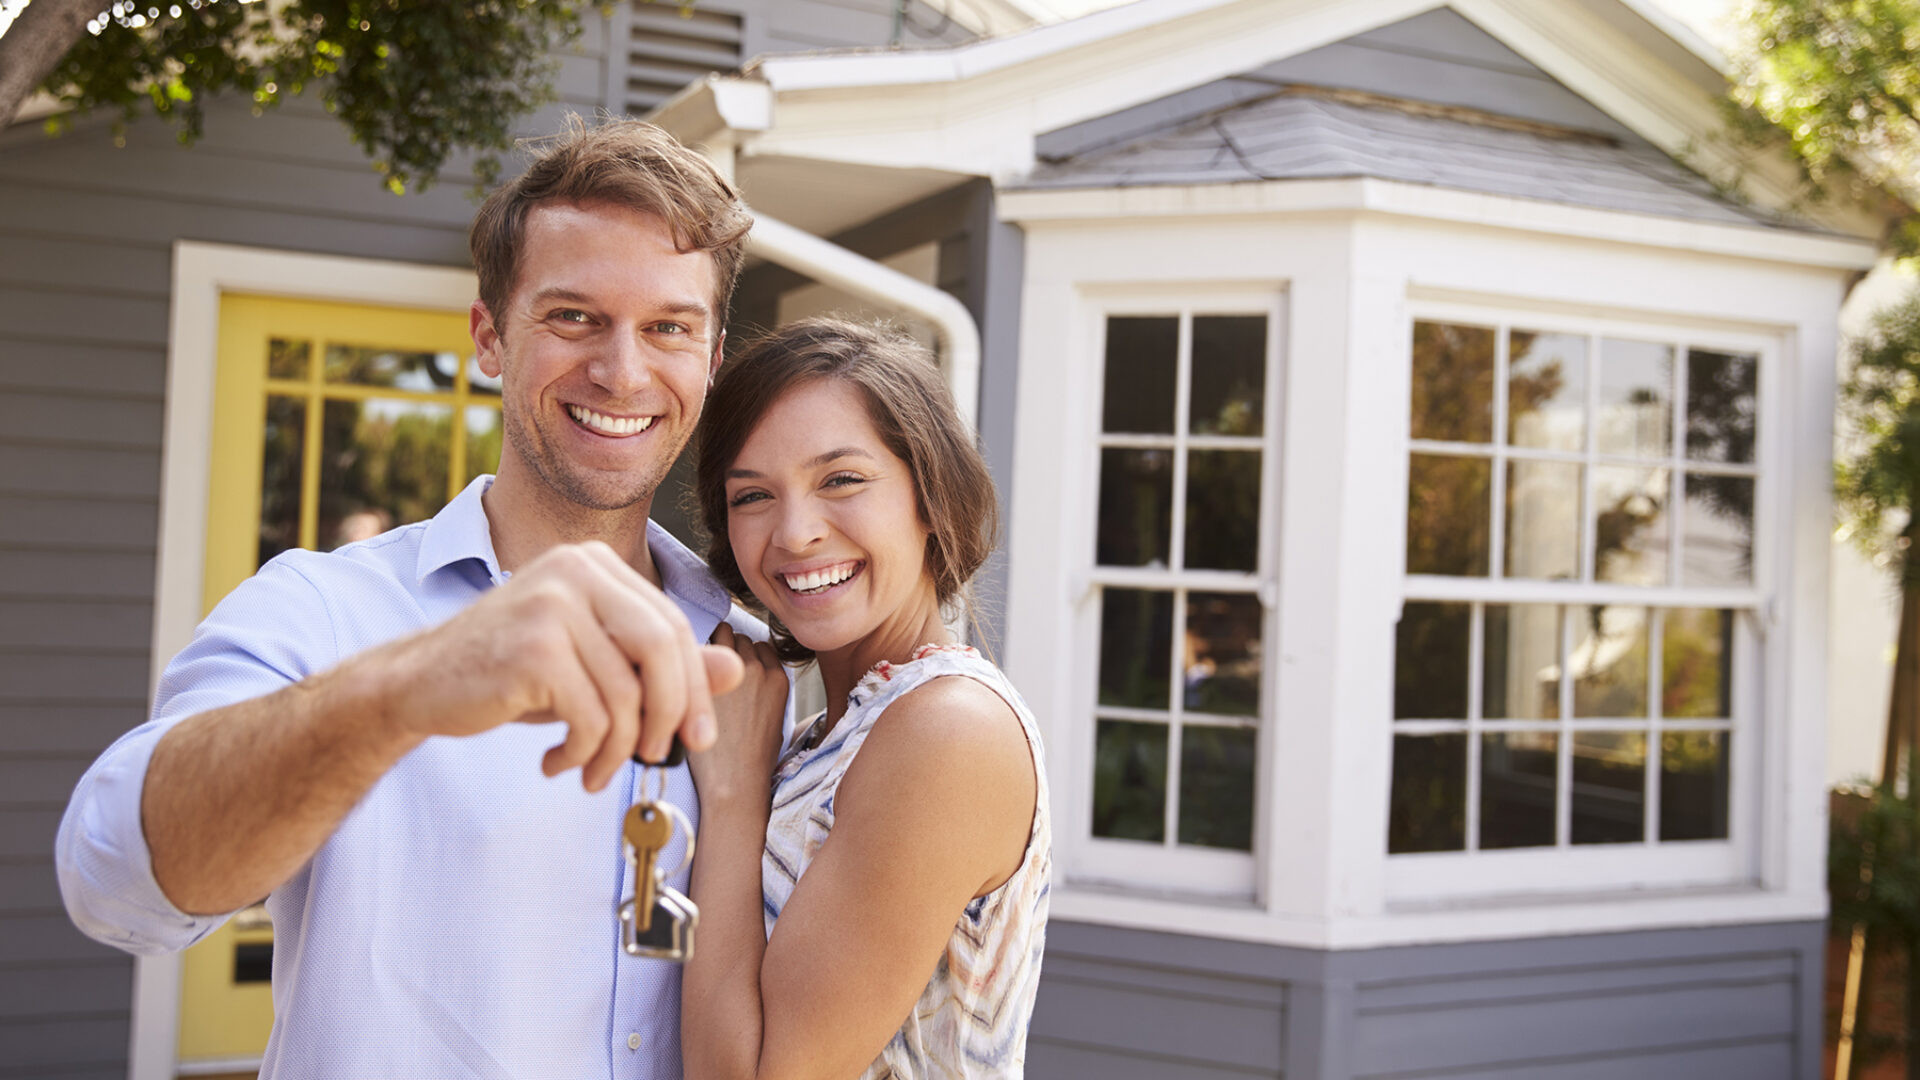 A Home Purchase Is A One-Time Investment With Full Benefits